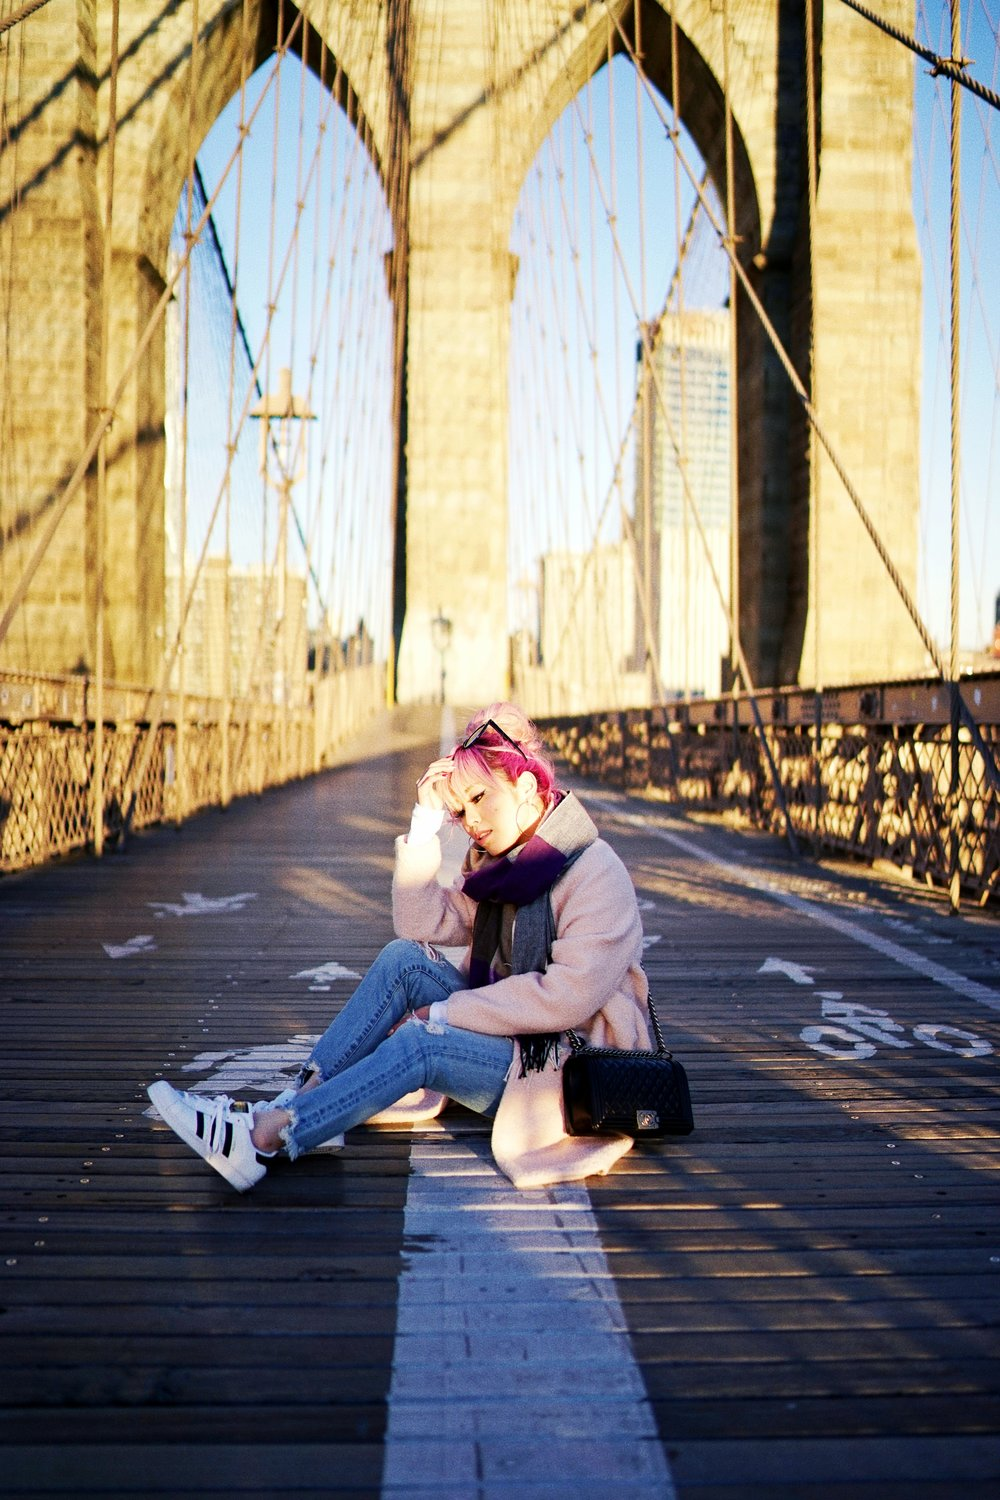 GAP Scarf-Zara pink coat-MOUSSY- frayed hem jeans- CHANEL Lambskin Quilted Medium Boy Flap Black-Adidas Superstar Shoes-Urban Outfitters Sunglasses-Aika's Love Closet-Sealtle fashion style blogger from japan-pink hair-brooklyn bridge-new york-city 2